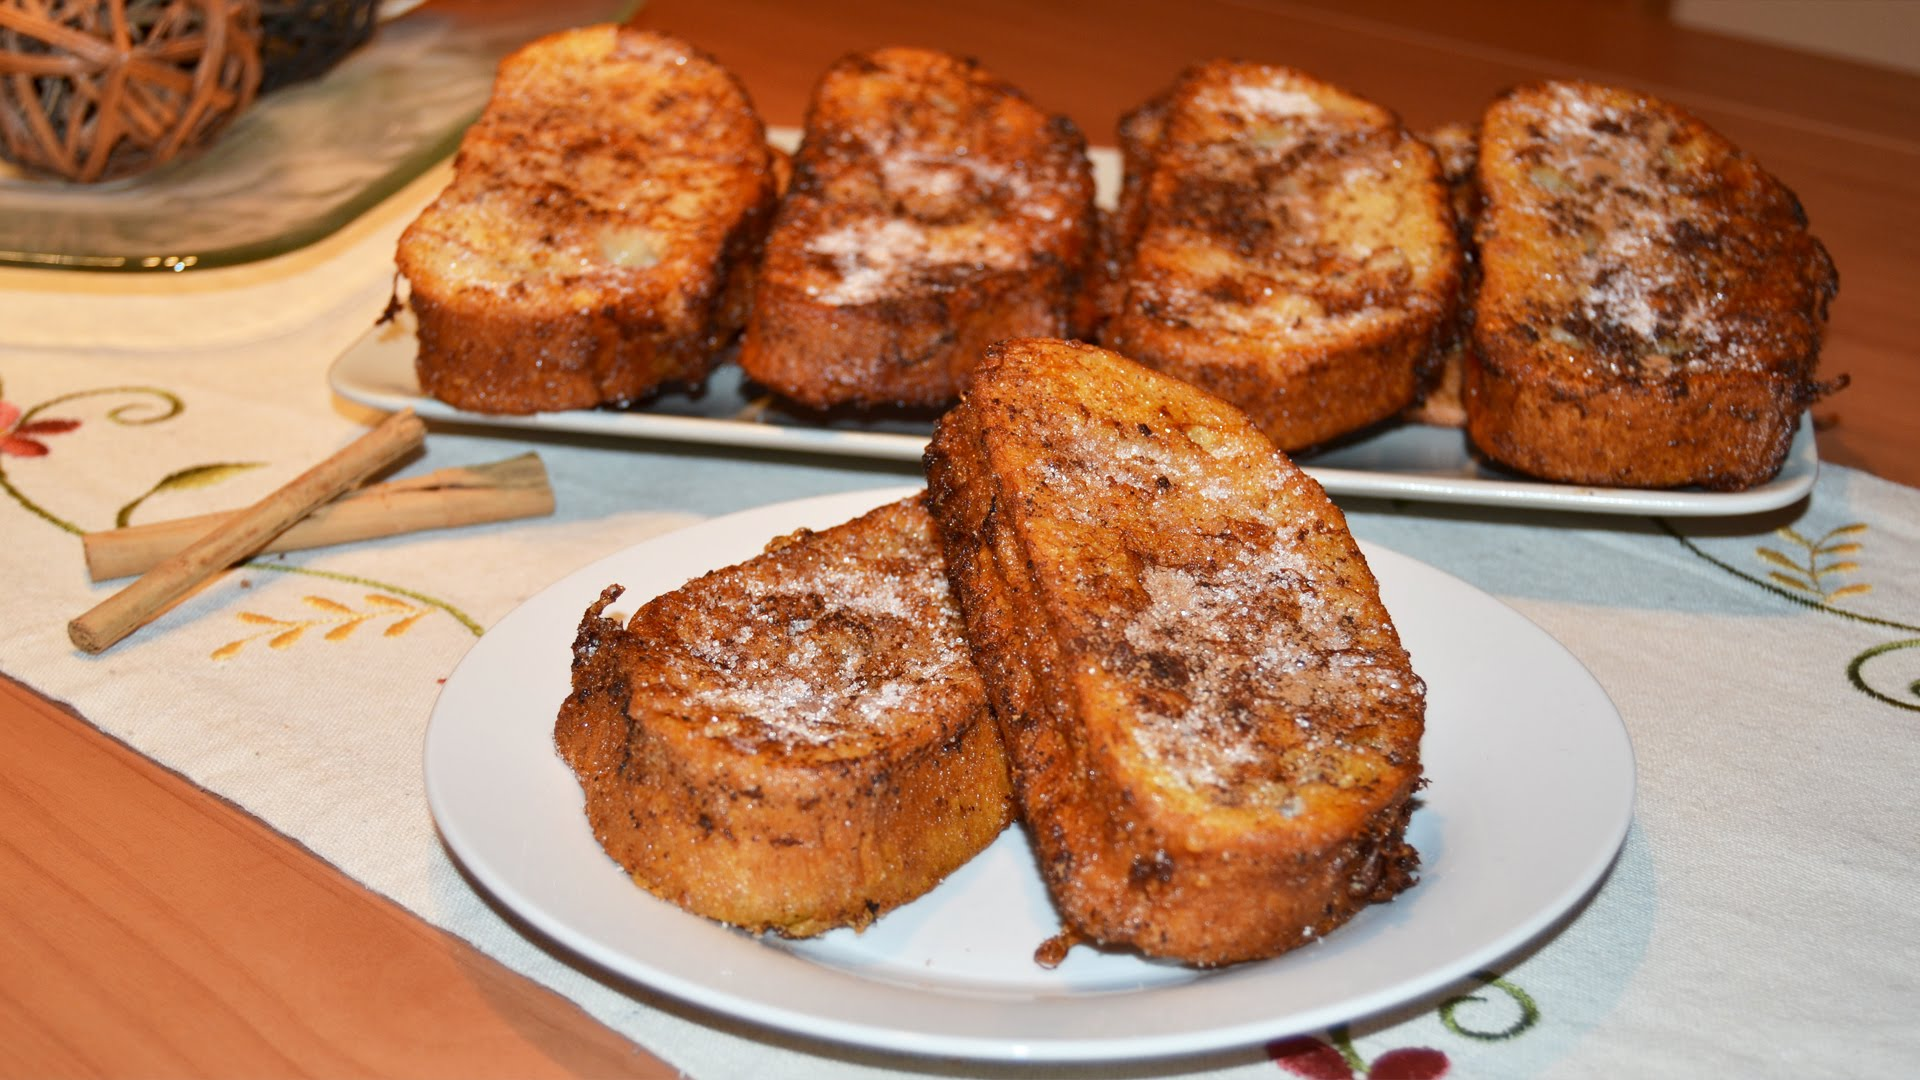 Spanish bread pudding